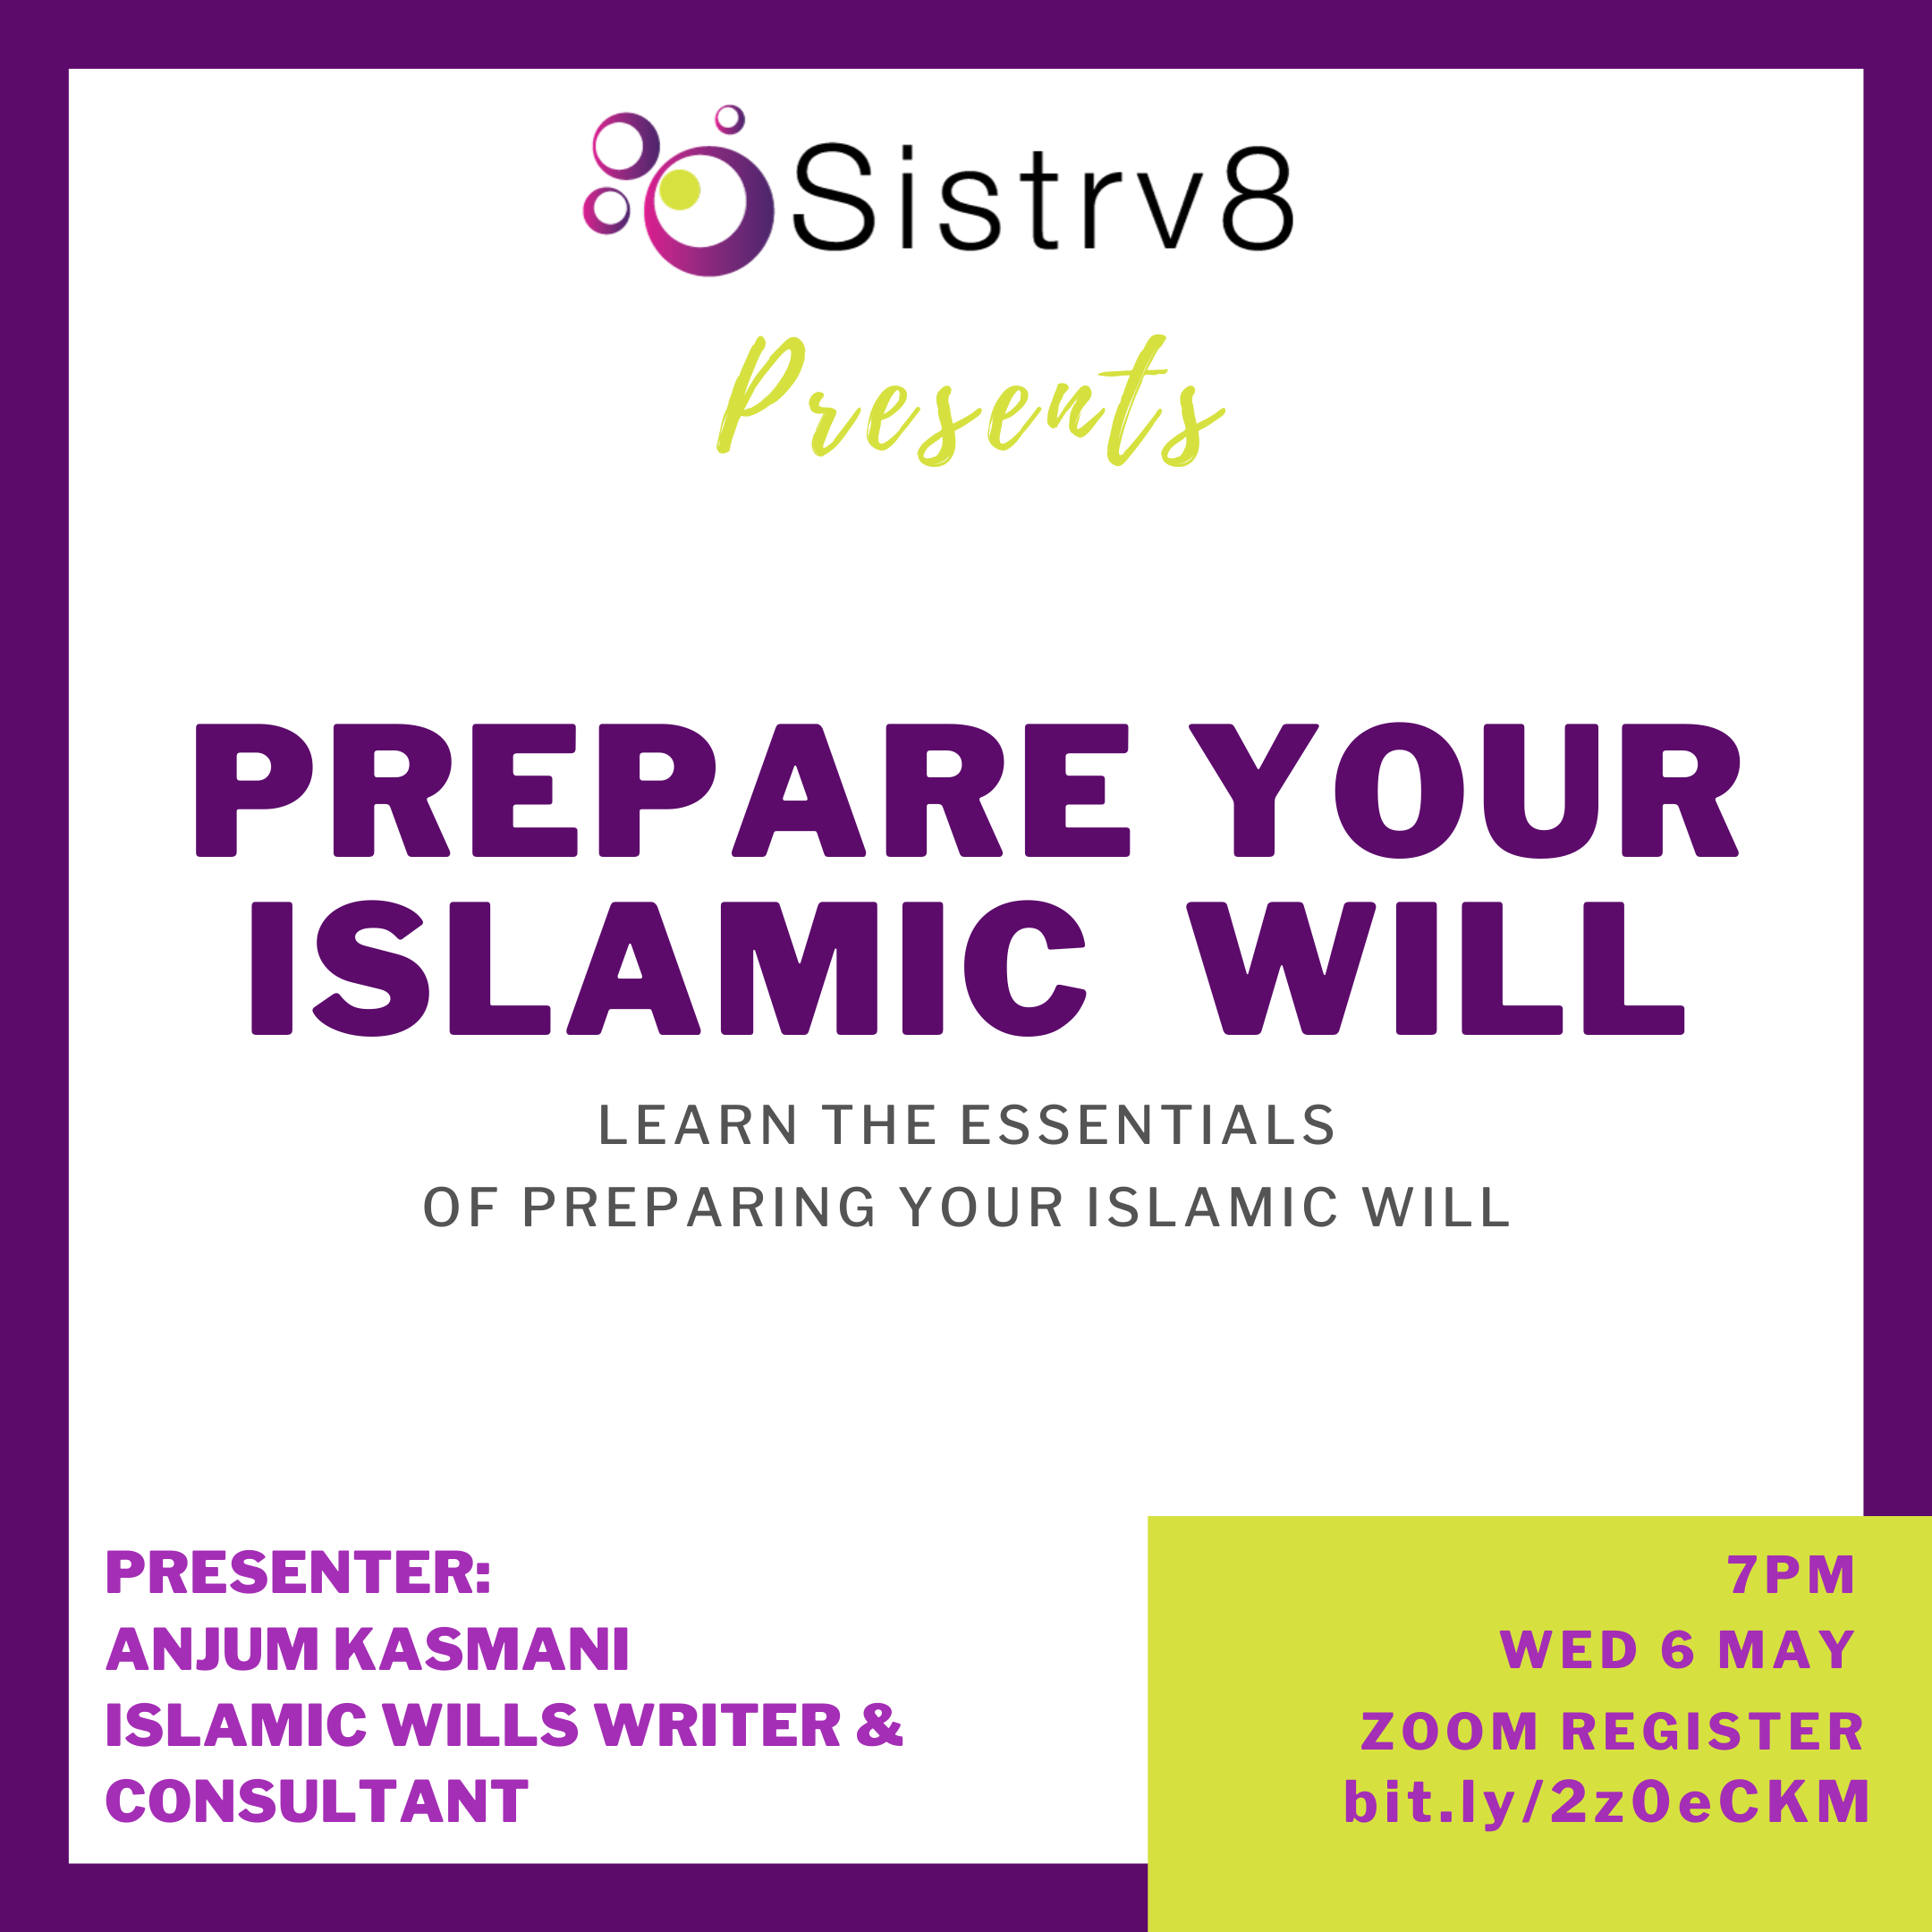 Sistrv8 Presents: Prepare Your Islamic Will